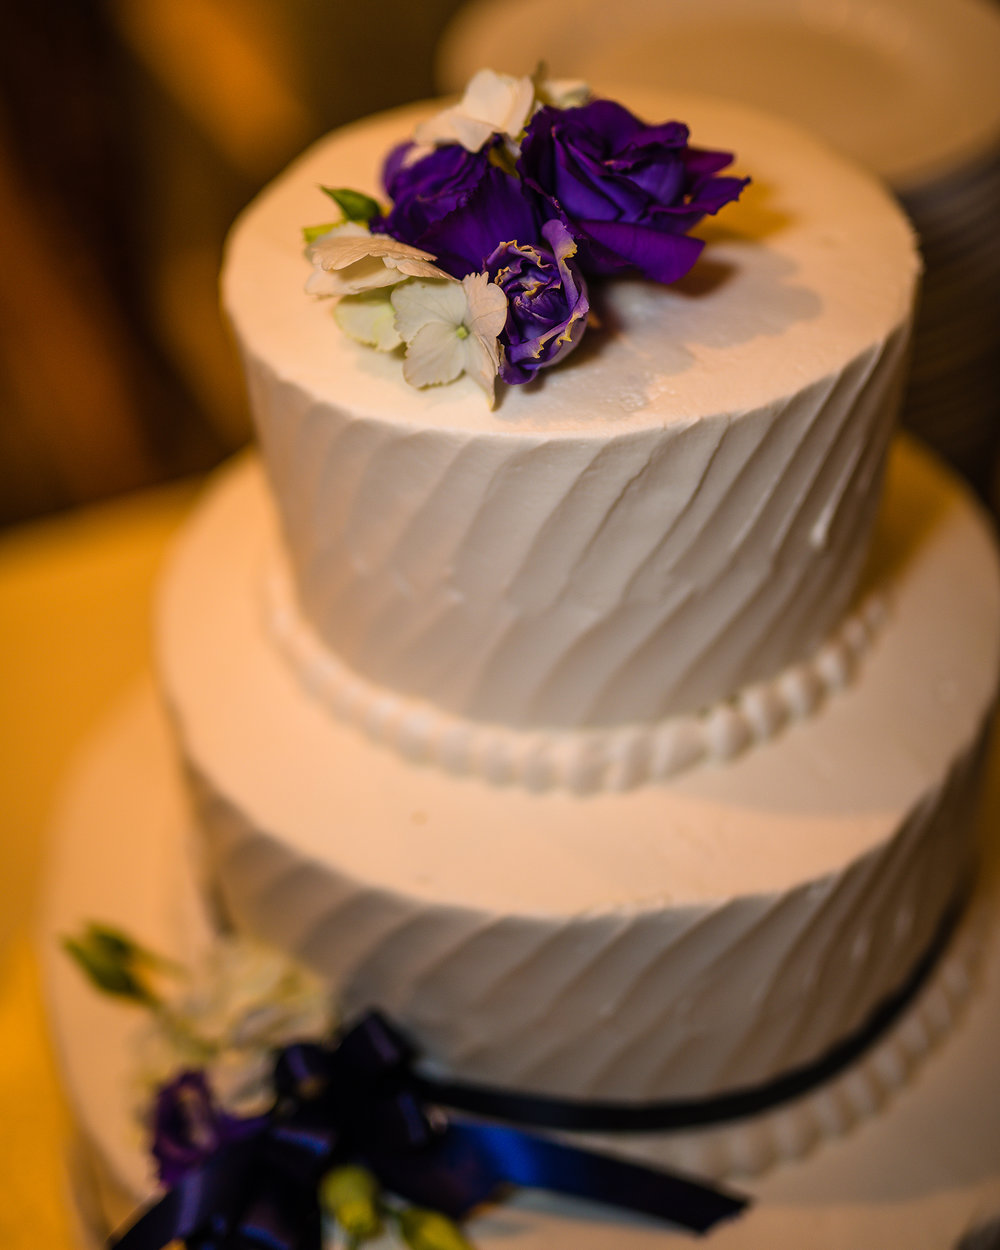 Wedding Cake Photograph Using Light Creatively